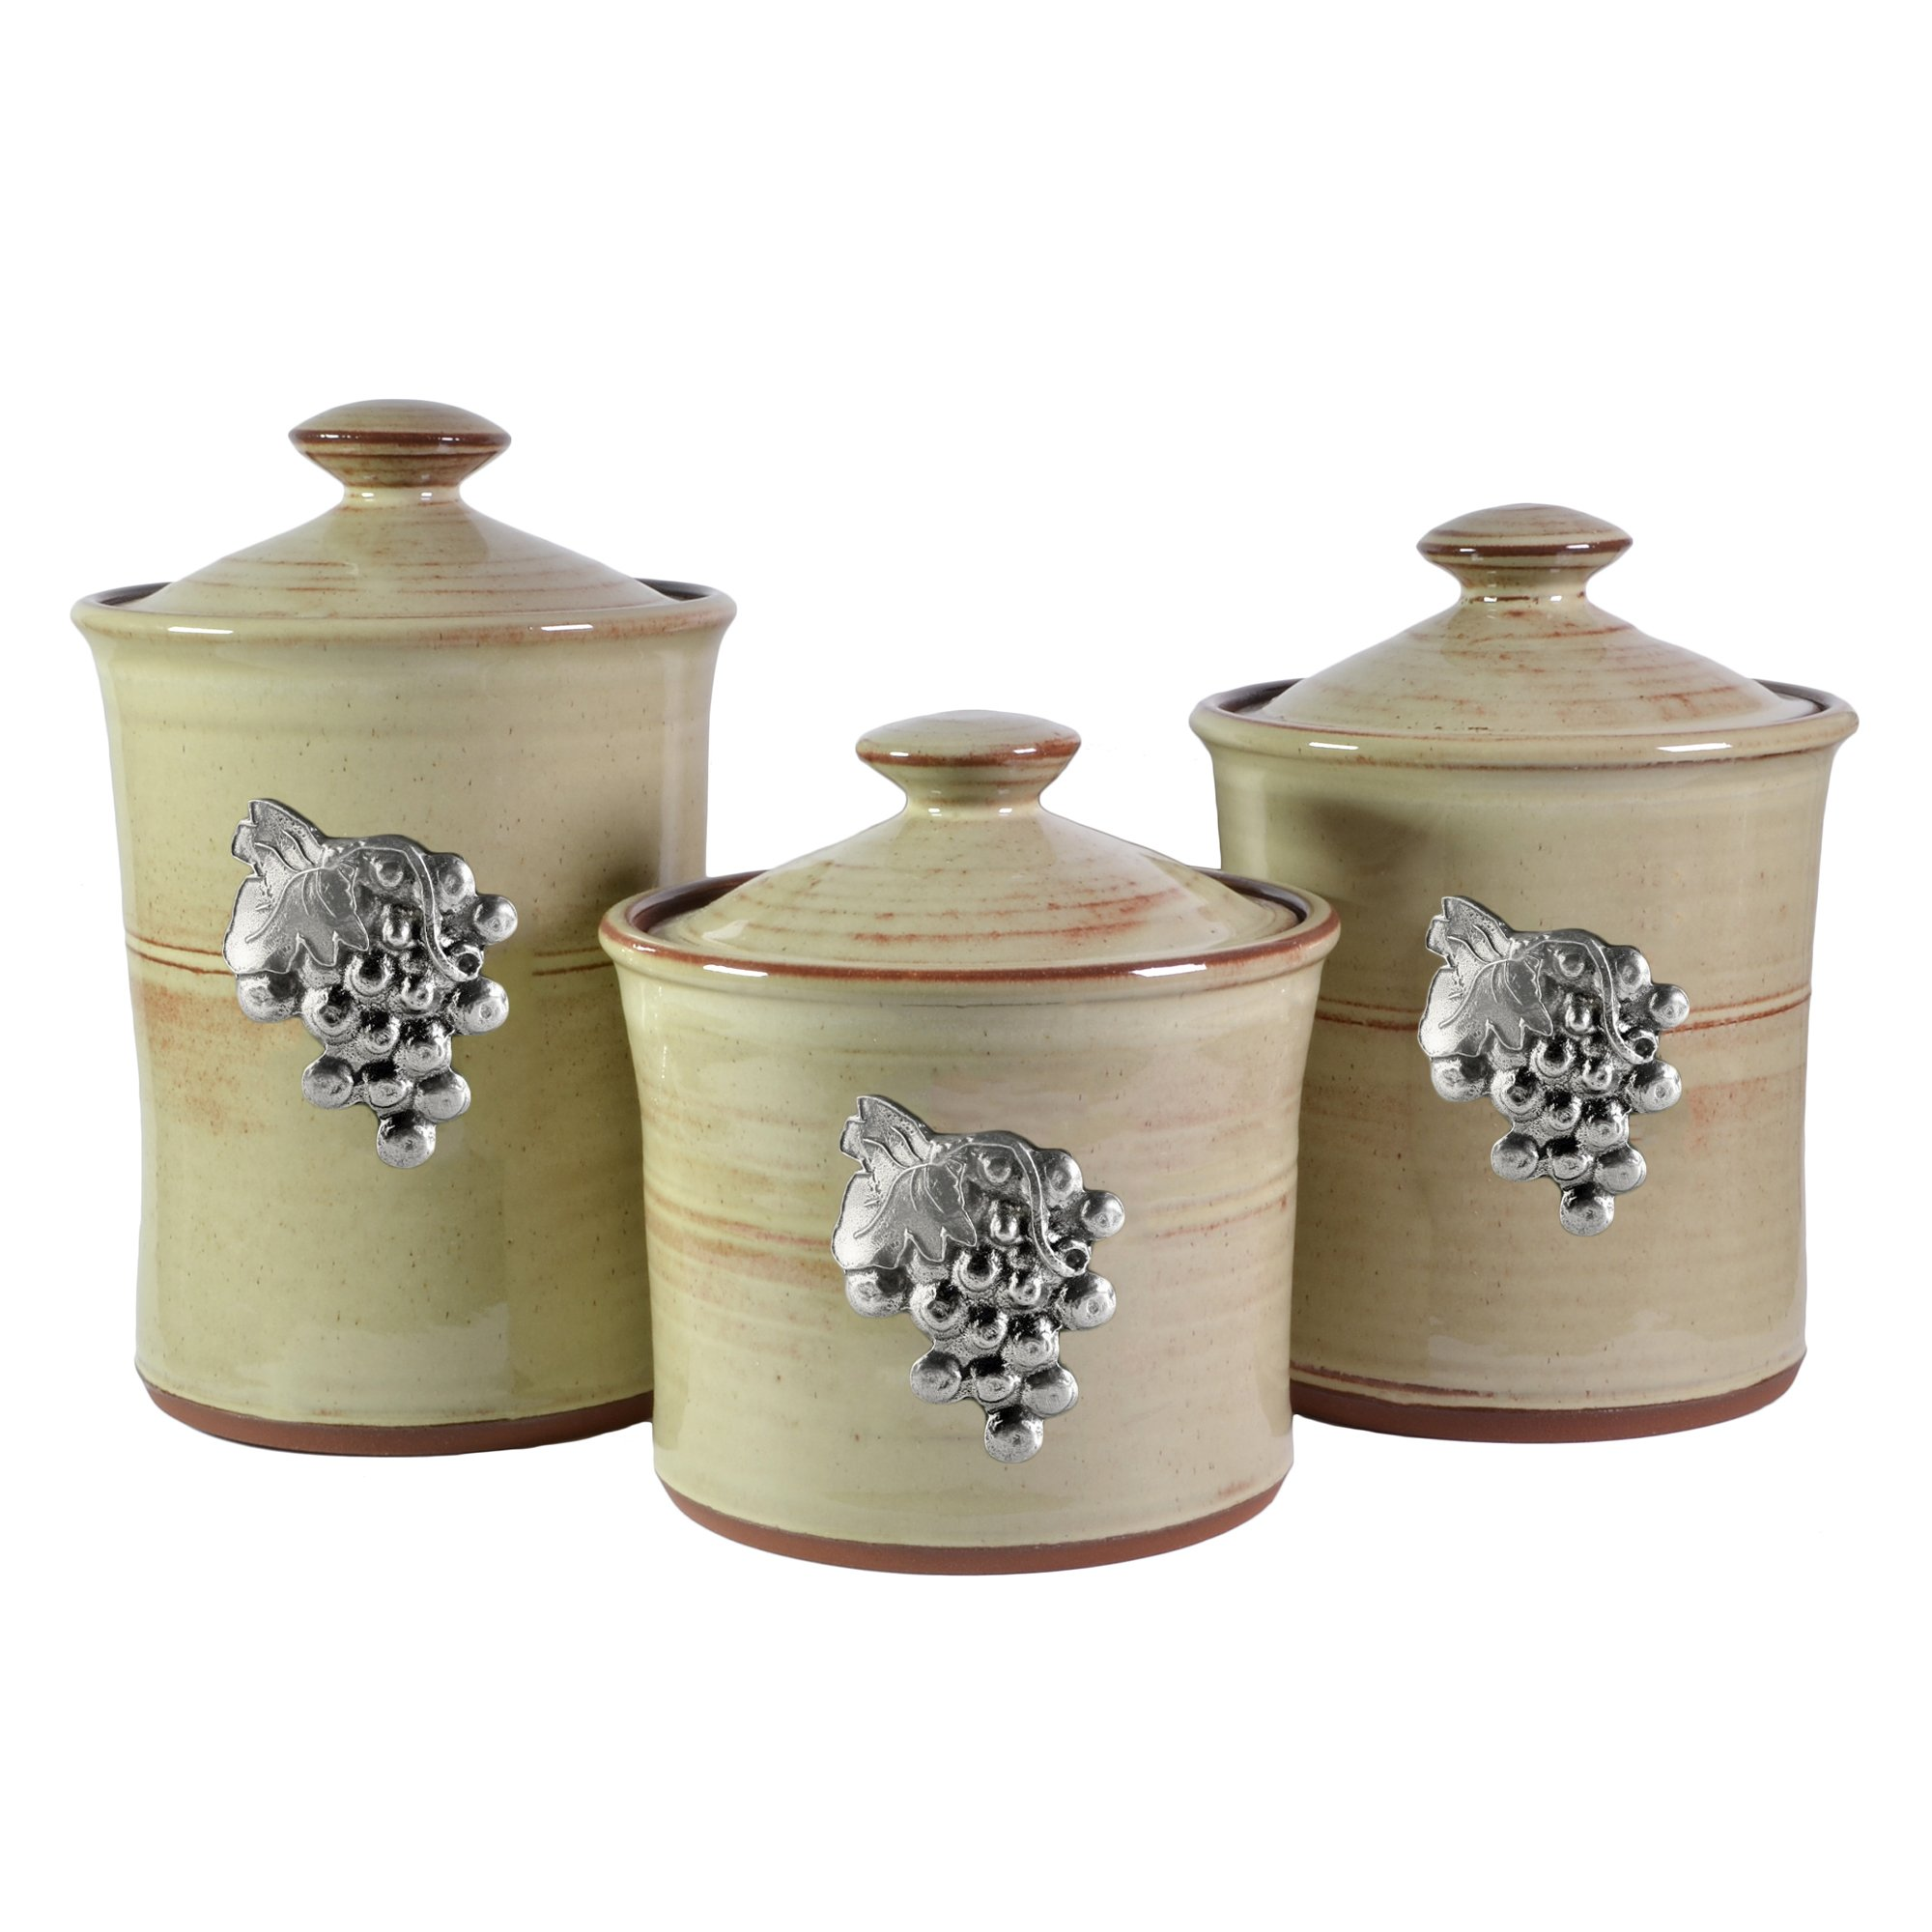 Oregon Stoneware Studio Vineyard 3-piece Canister Set, Latte by Oregon Stoneware Studio